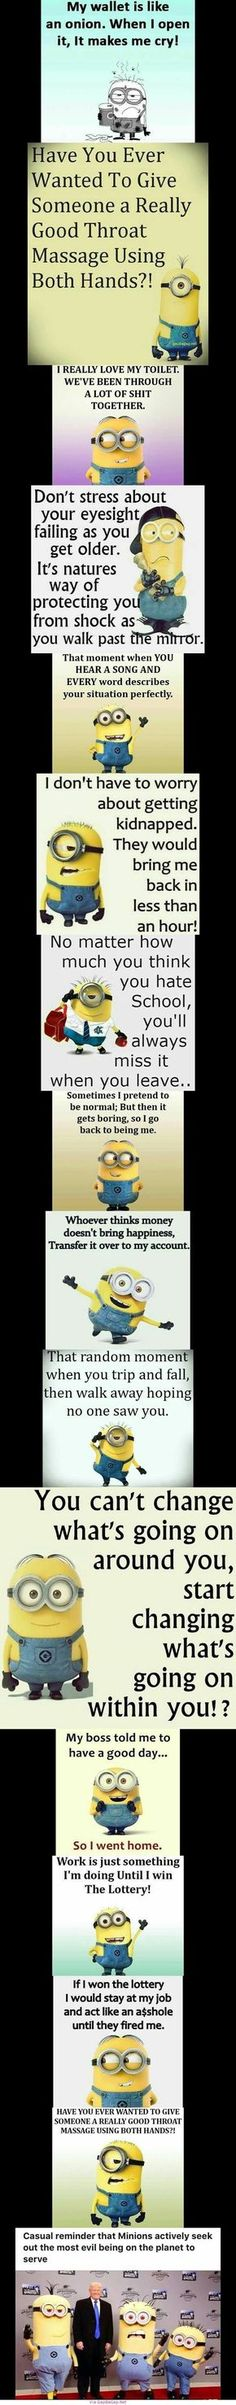 Top 15 Funniest Memes By The #Minions - funny minion memes, Funny Minion Quote, funny minion quotes, Funny Quote, Quotes - Minion-Quotes.com